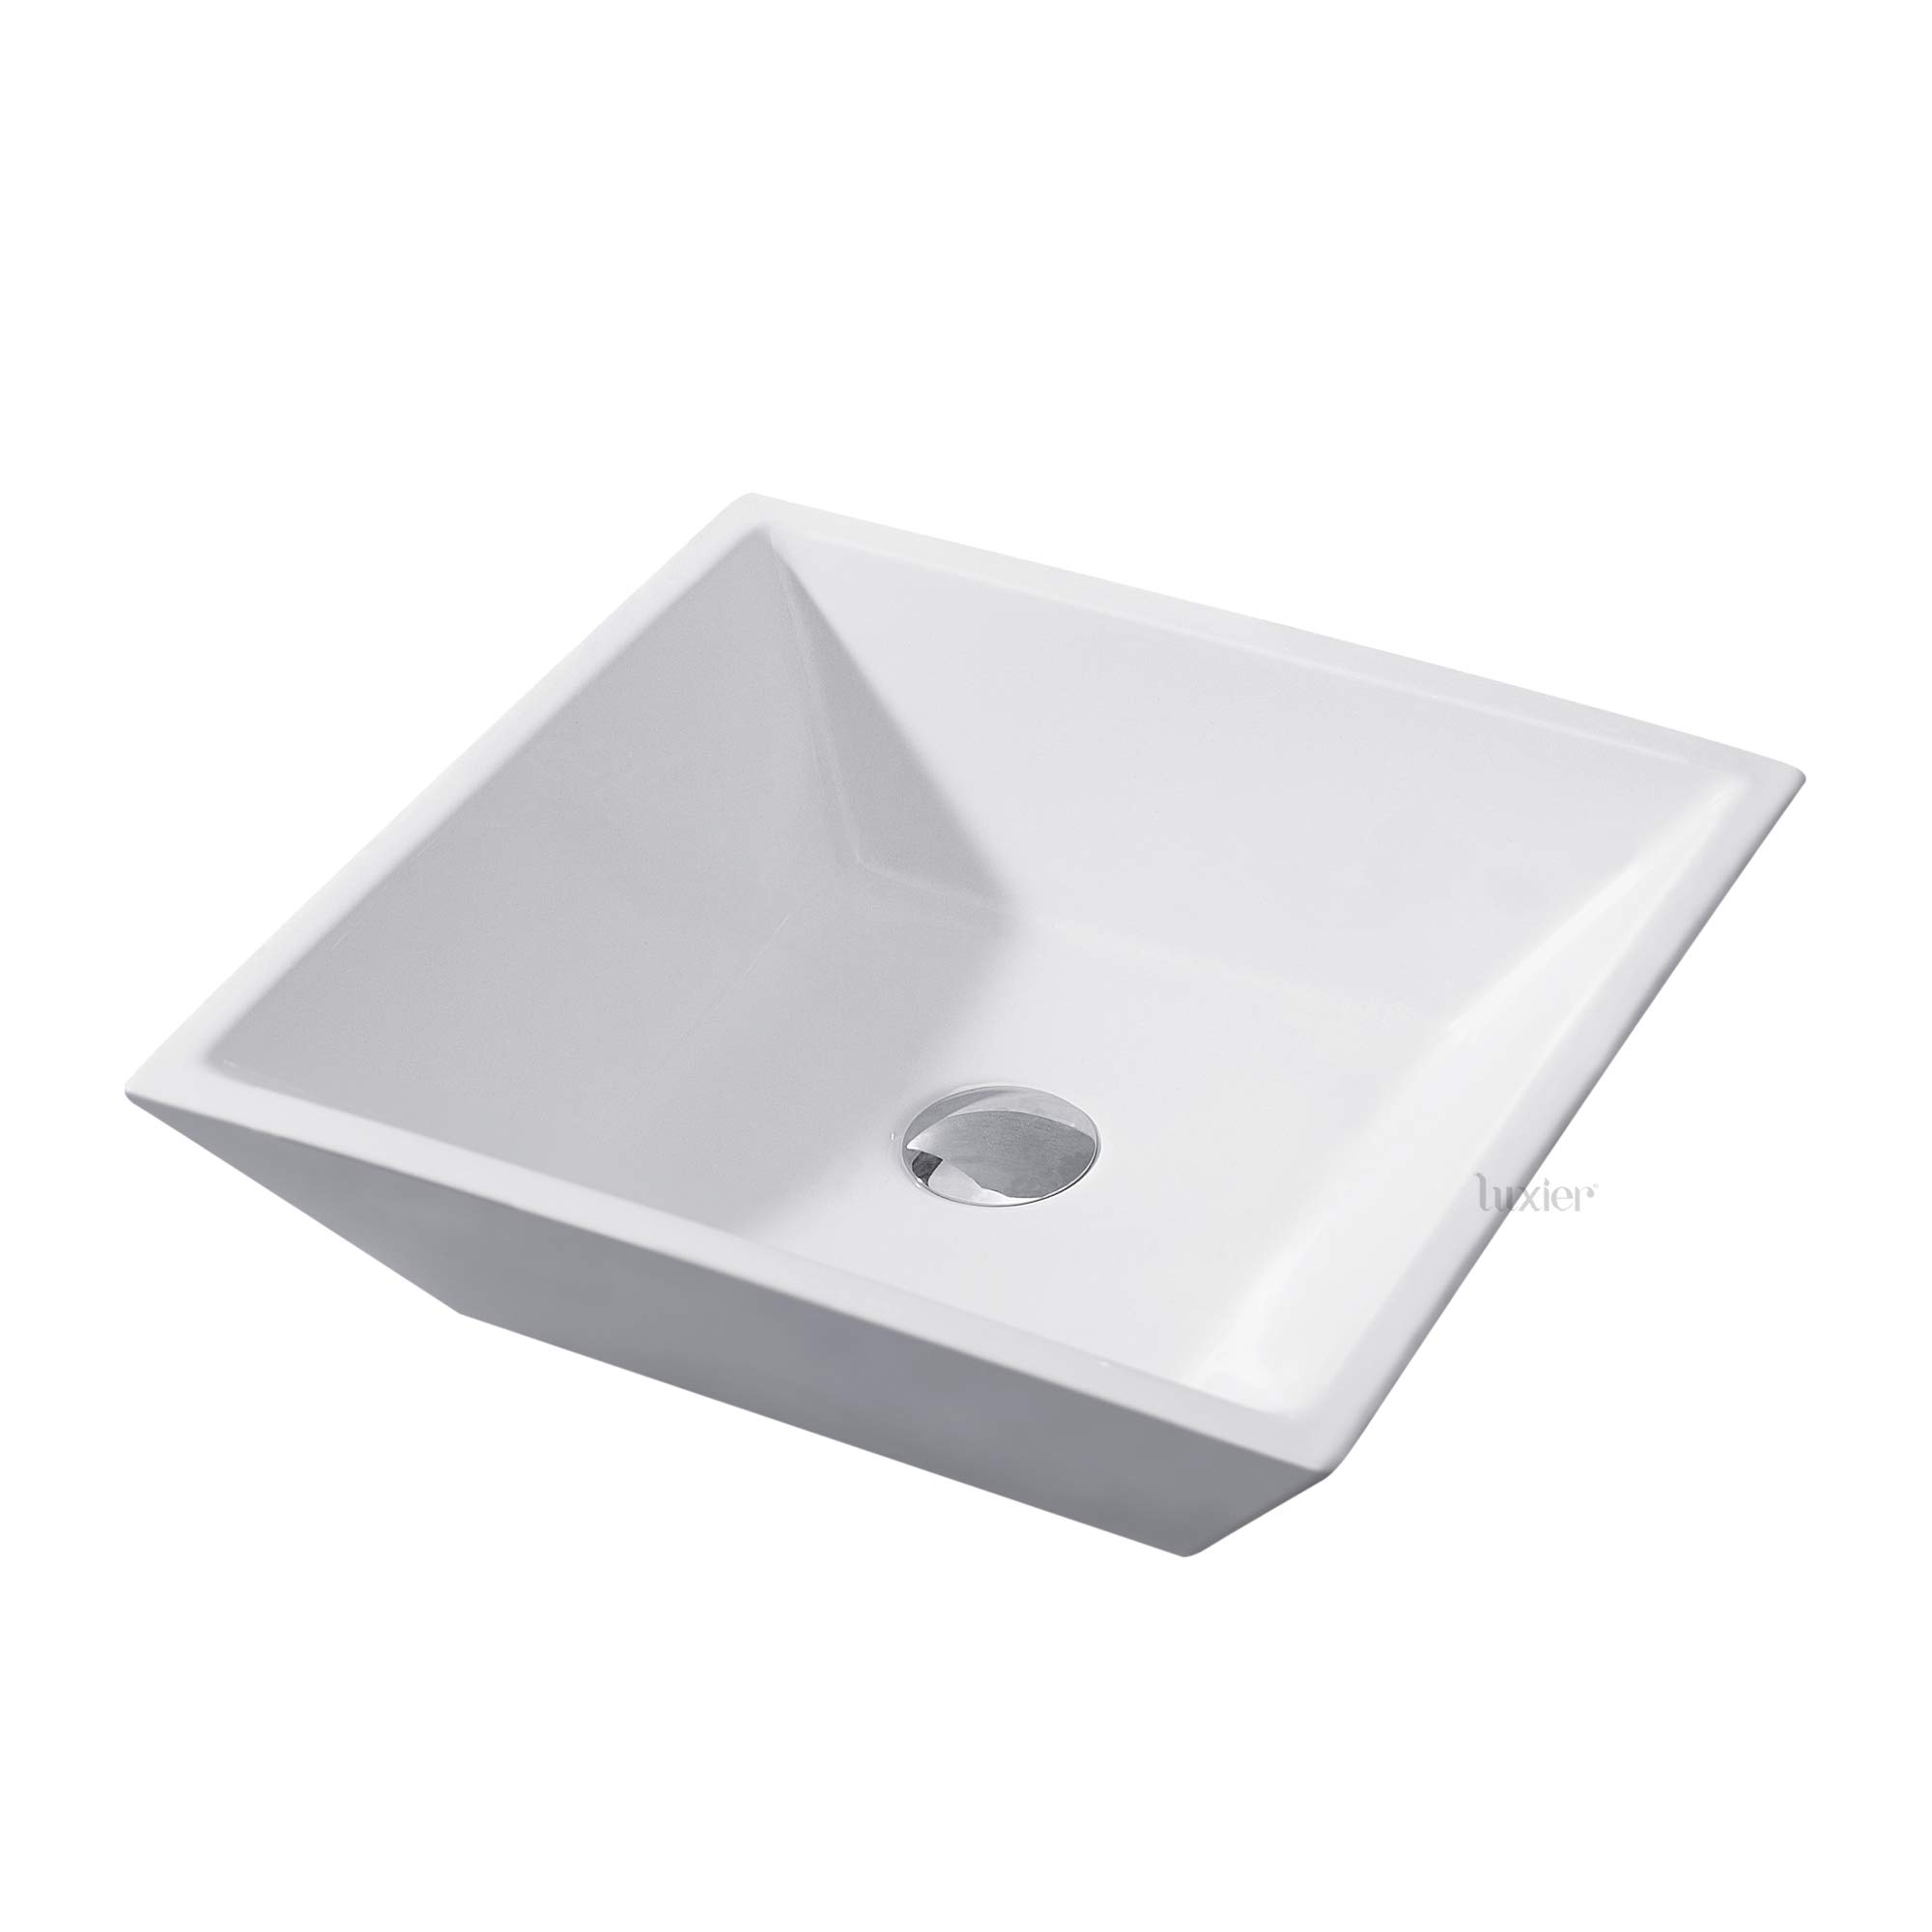 Luxier CS-006 Bathroom Porcelain Ceramic Vessel Vanity Sink Art Basin